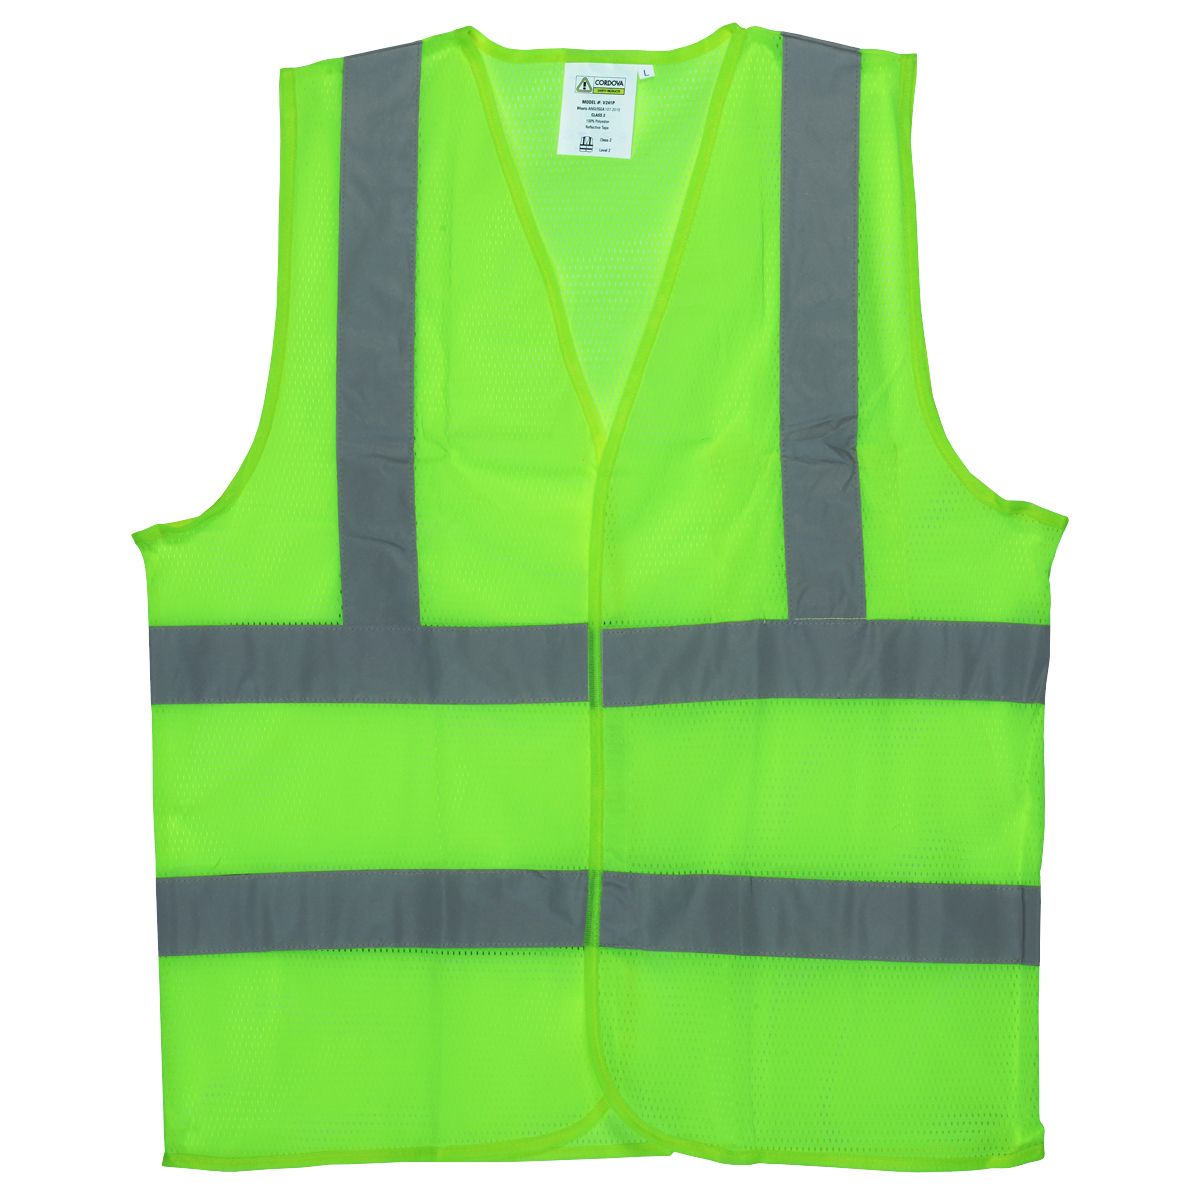 Accsafe Premium Safety Vest PSV01